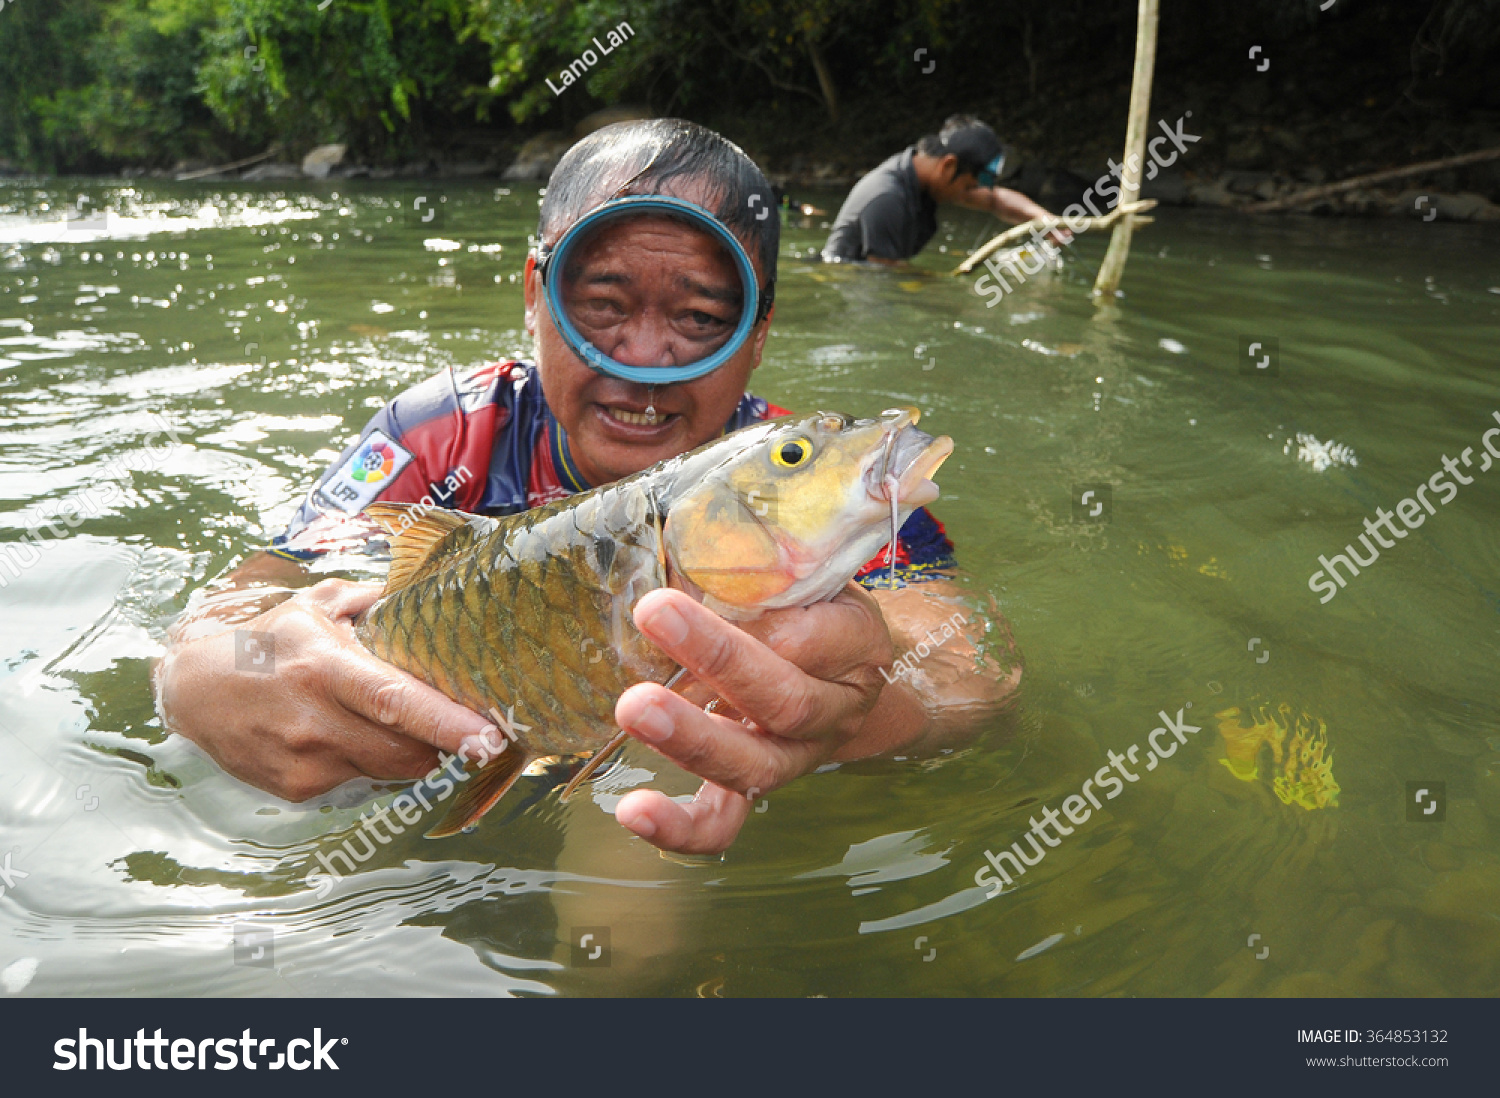 Freshwater fish in malaysia - Kiulu Sabah Malaysia Marc 13 2014 Unidentified Man Showing Freshwater Fish Called